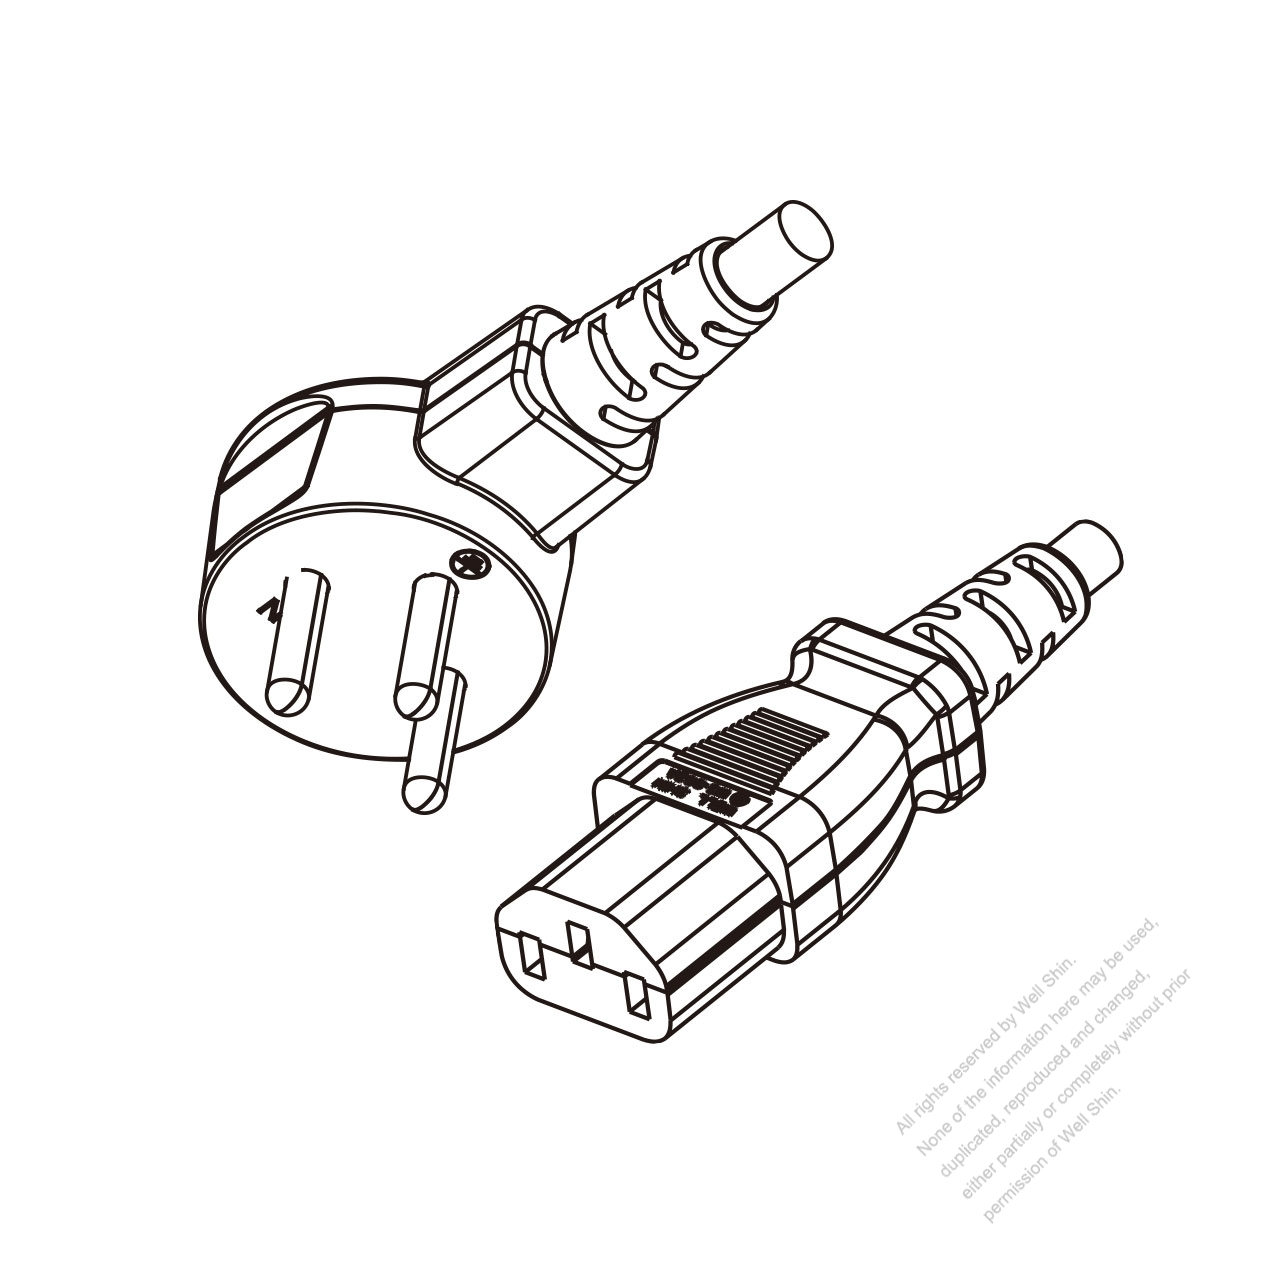 Israel 3 Pin Angle Type Plug To Iec 320 C13 Power Cord Set